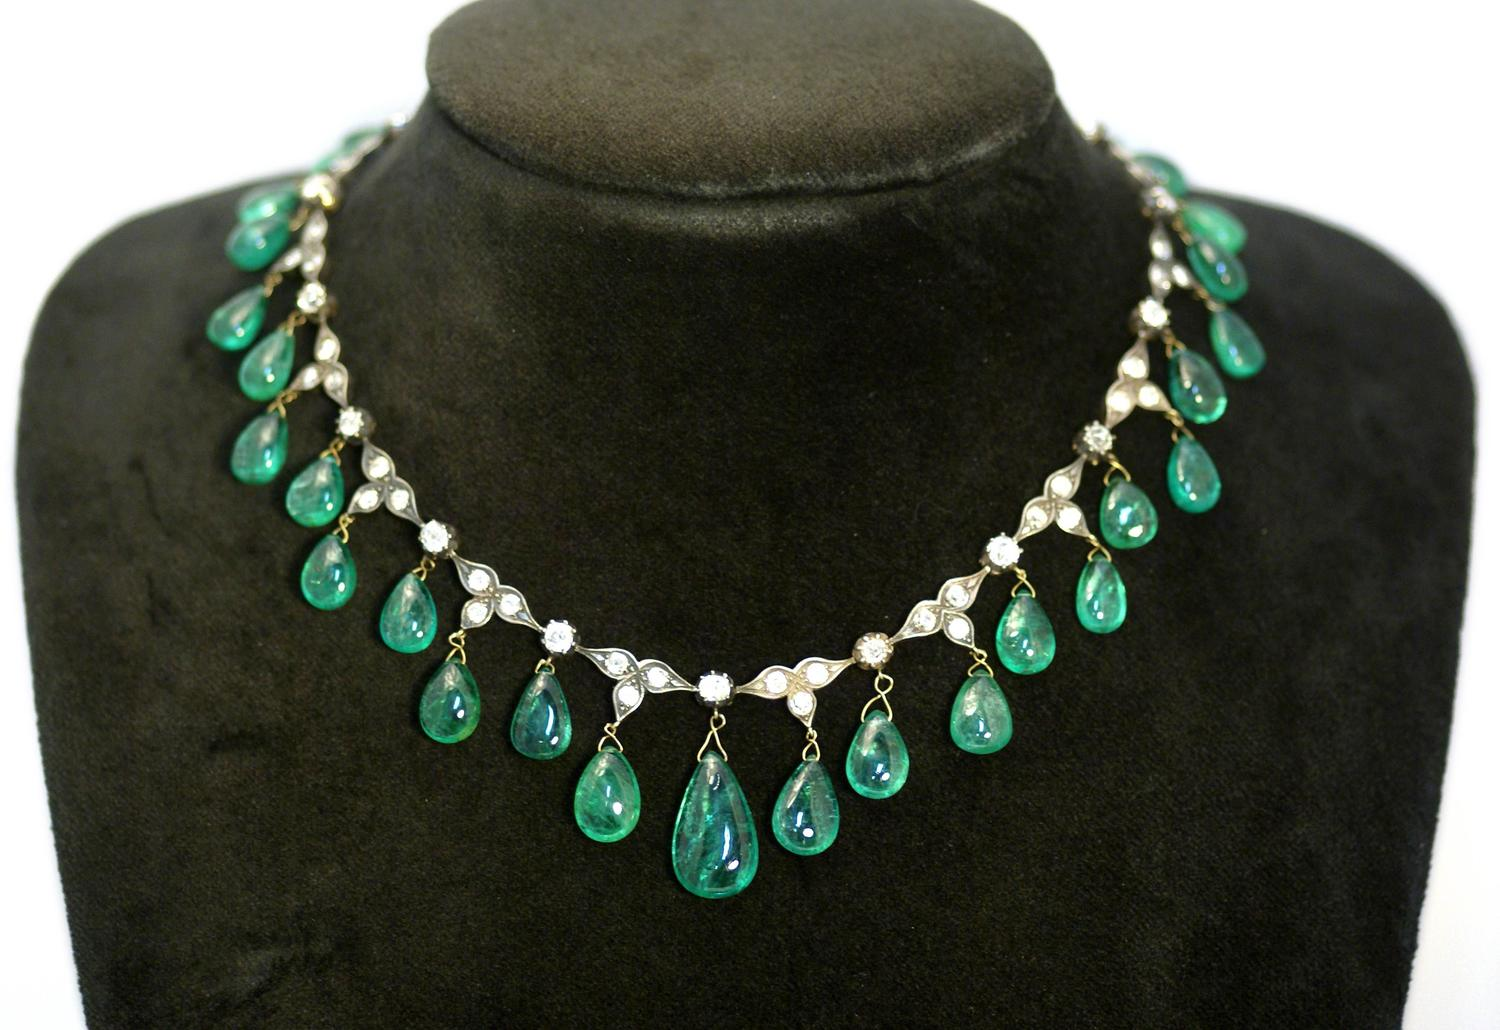 Antique Emerald Drop Necklace For Sale At 1stdibs